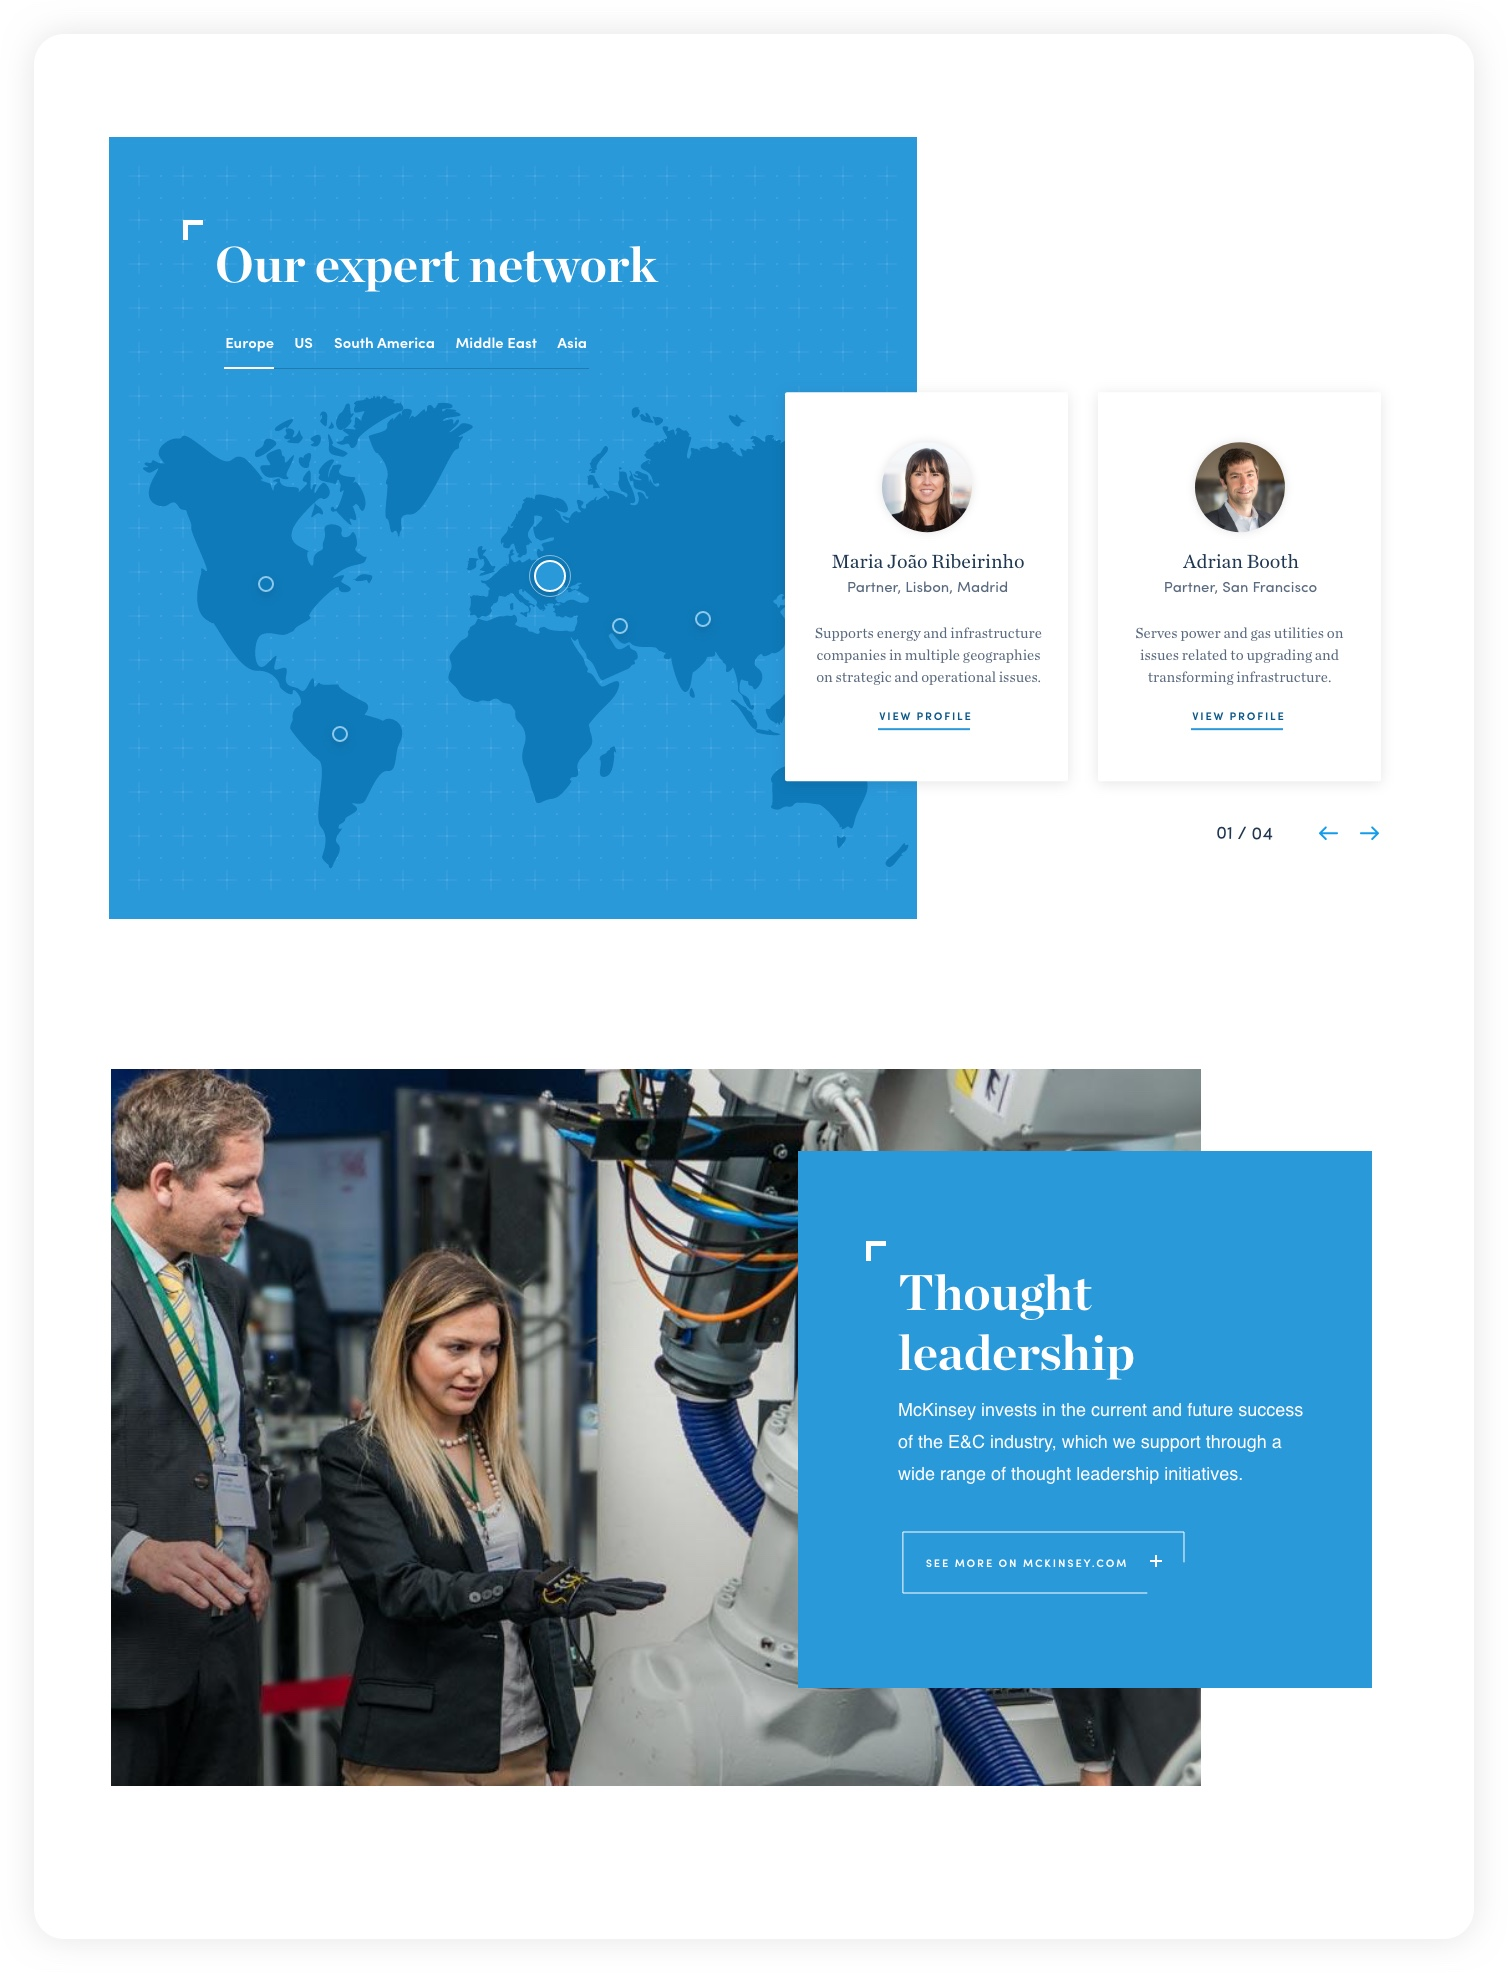 Design for Our expert network section, profiles – McKinsey C&E experience website: Navigating complexity